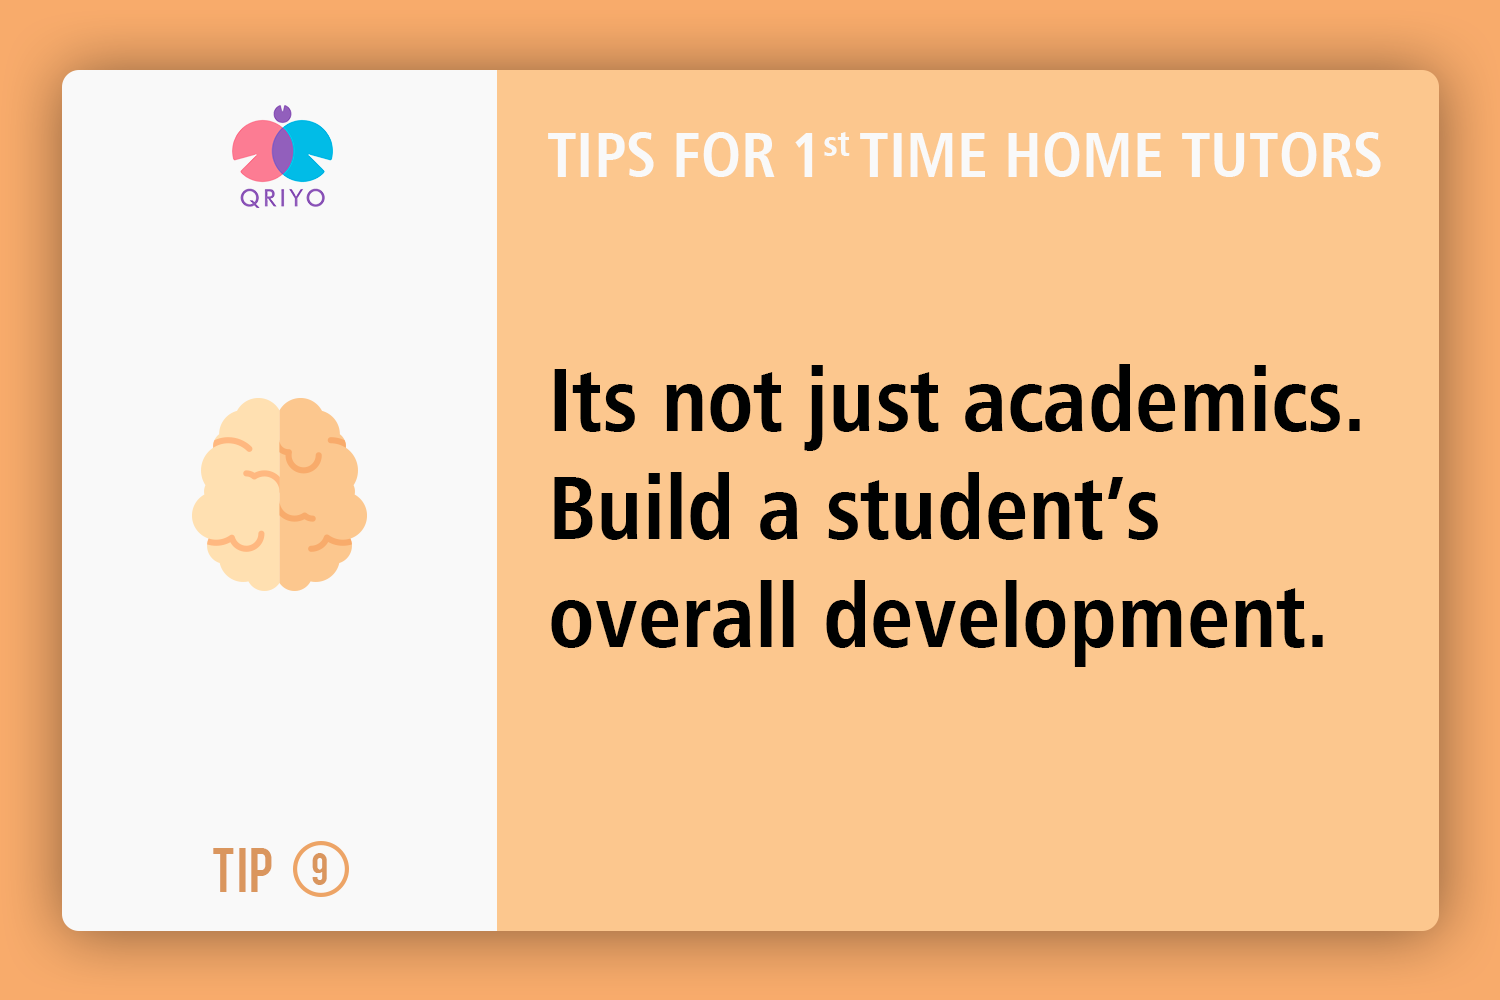 Help in overall development of the student.